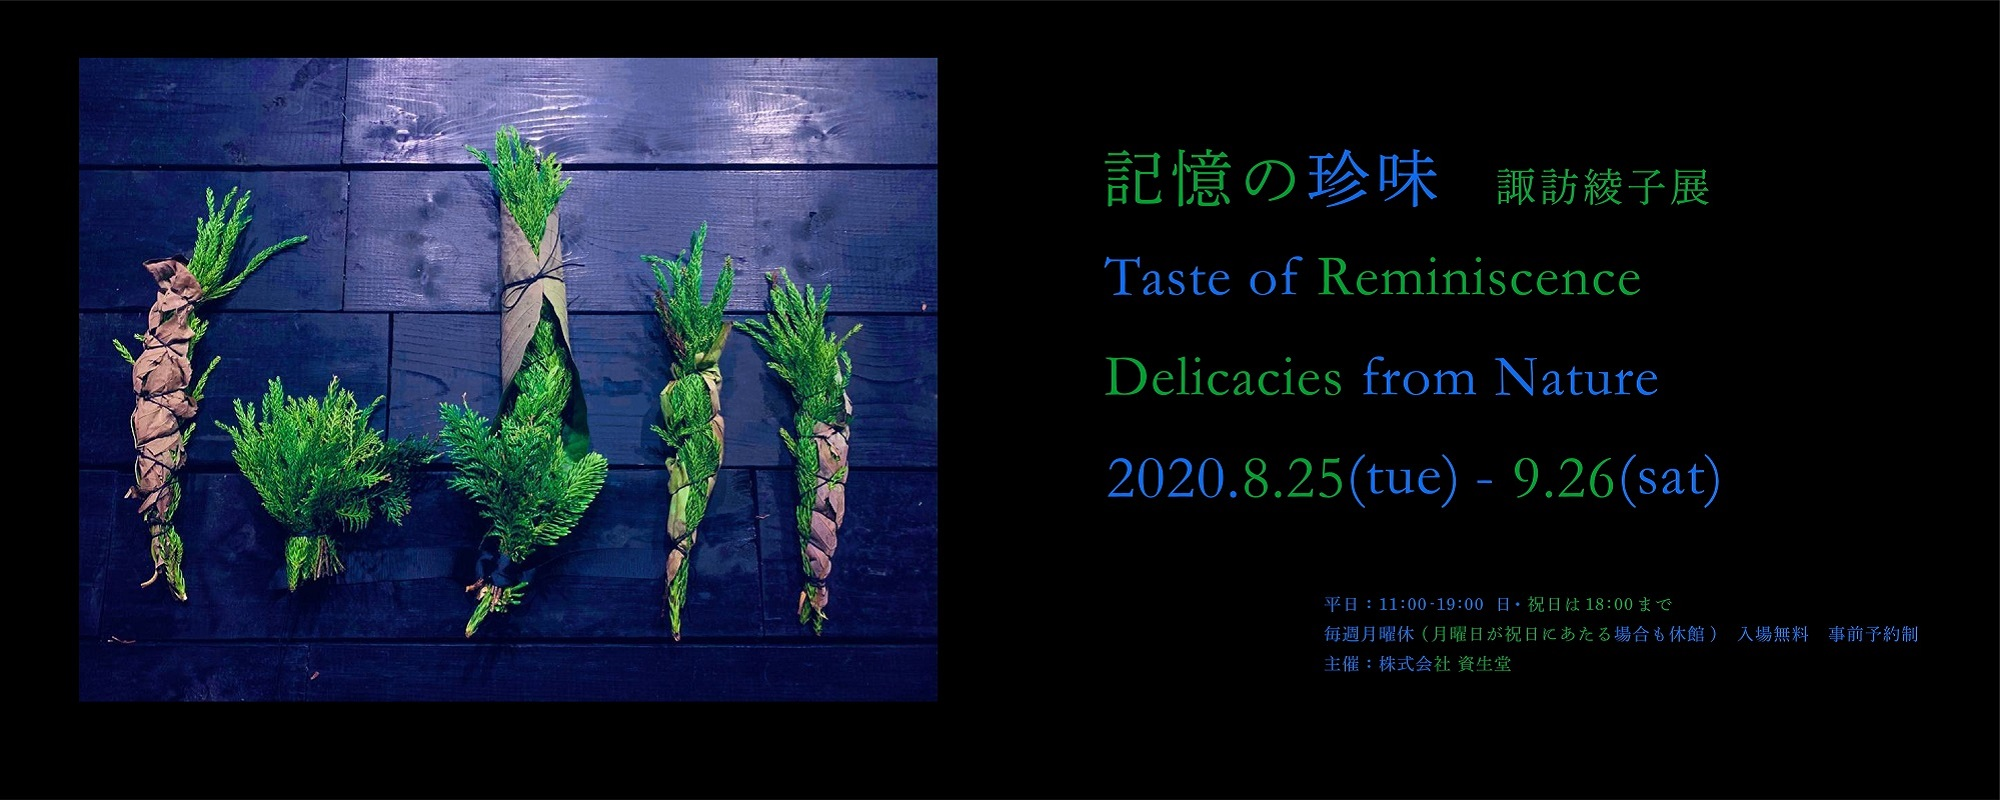 """""""Taste of Reminiscence, Delicacies from Nature: Ayako Suwa Exhibition""""  will run from August 25(Tue) —September 26(Sat), 2020"""